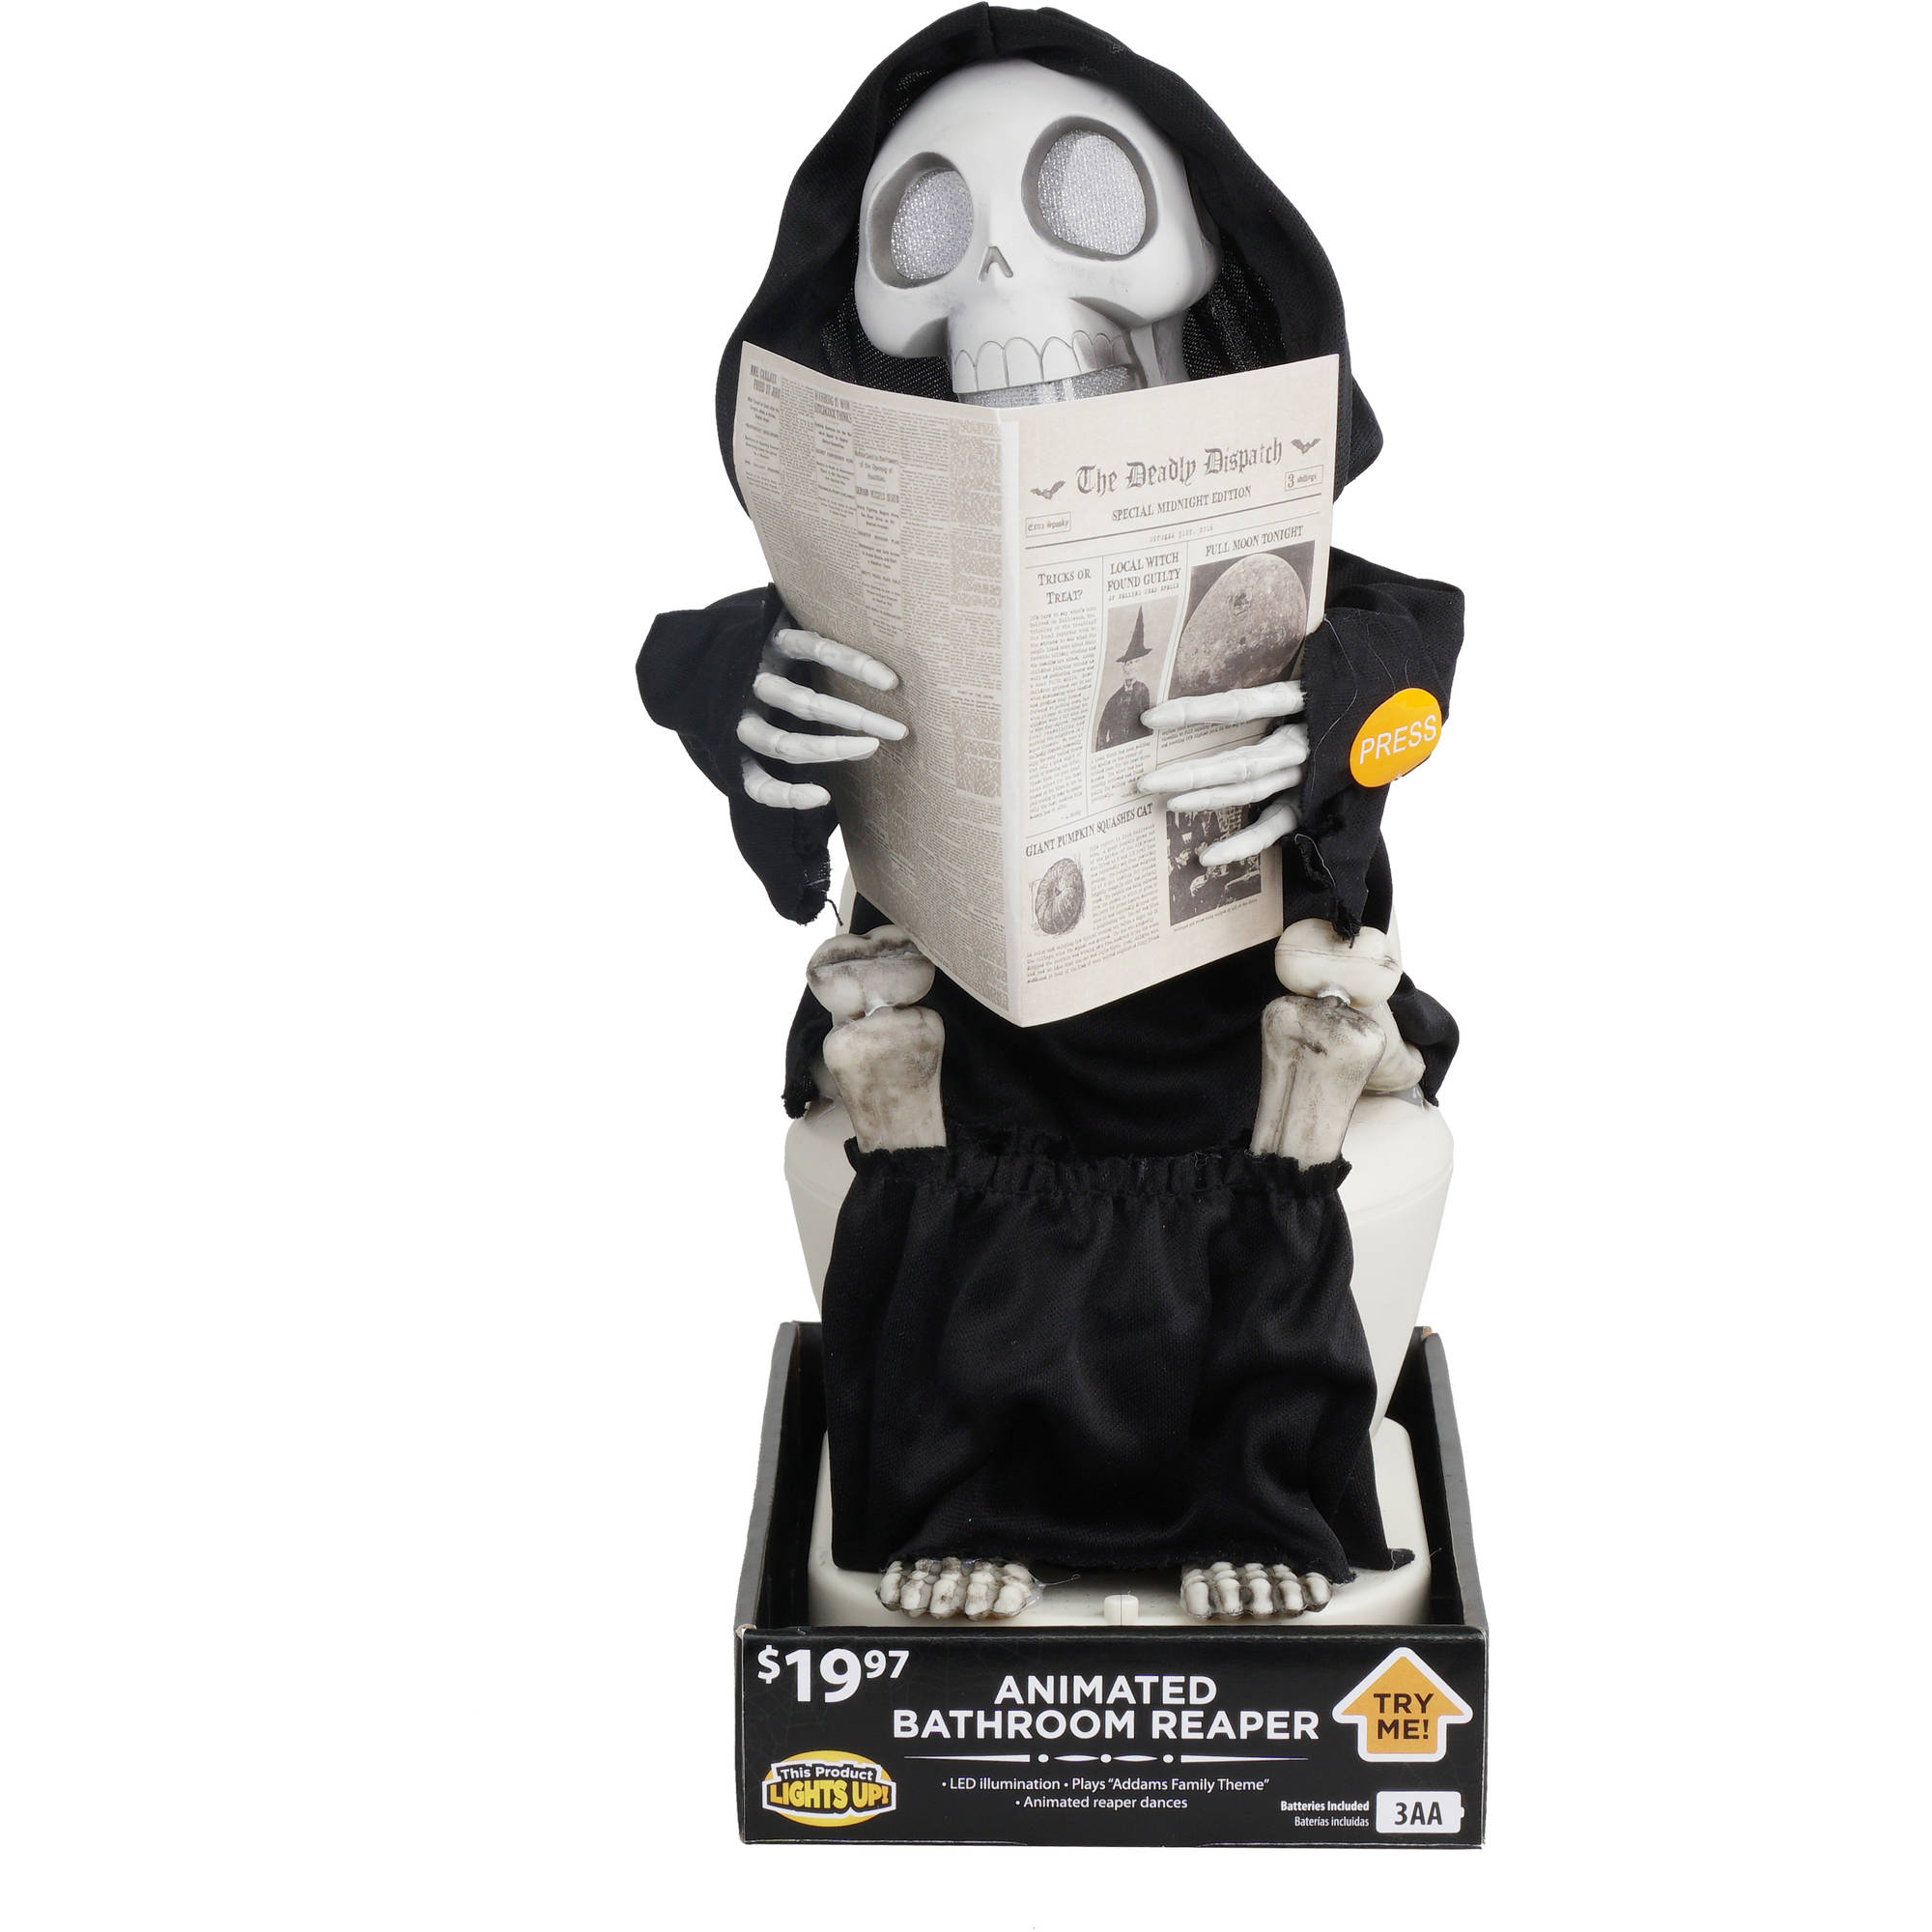 animated bathroom reaper halloween decoration walmartcom - Animated Halloween Decorations